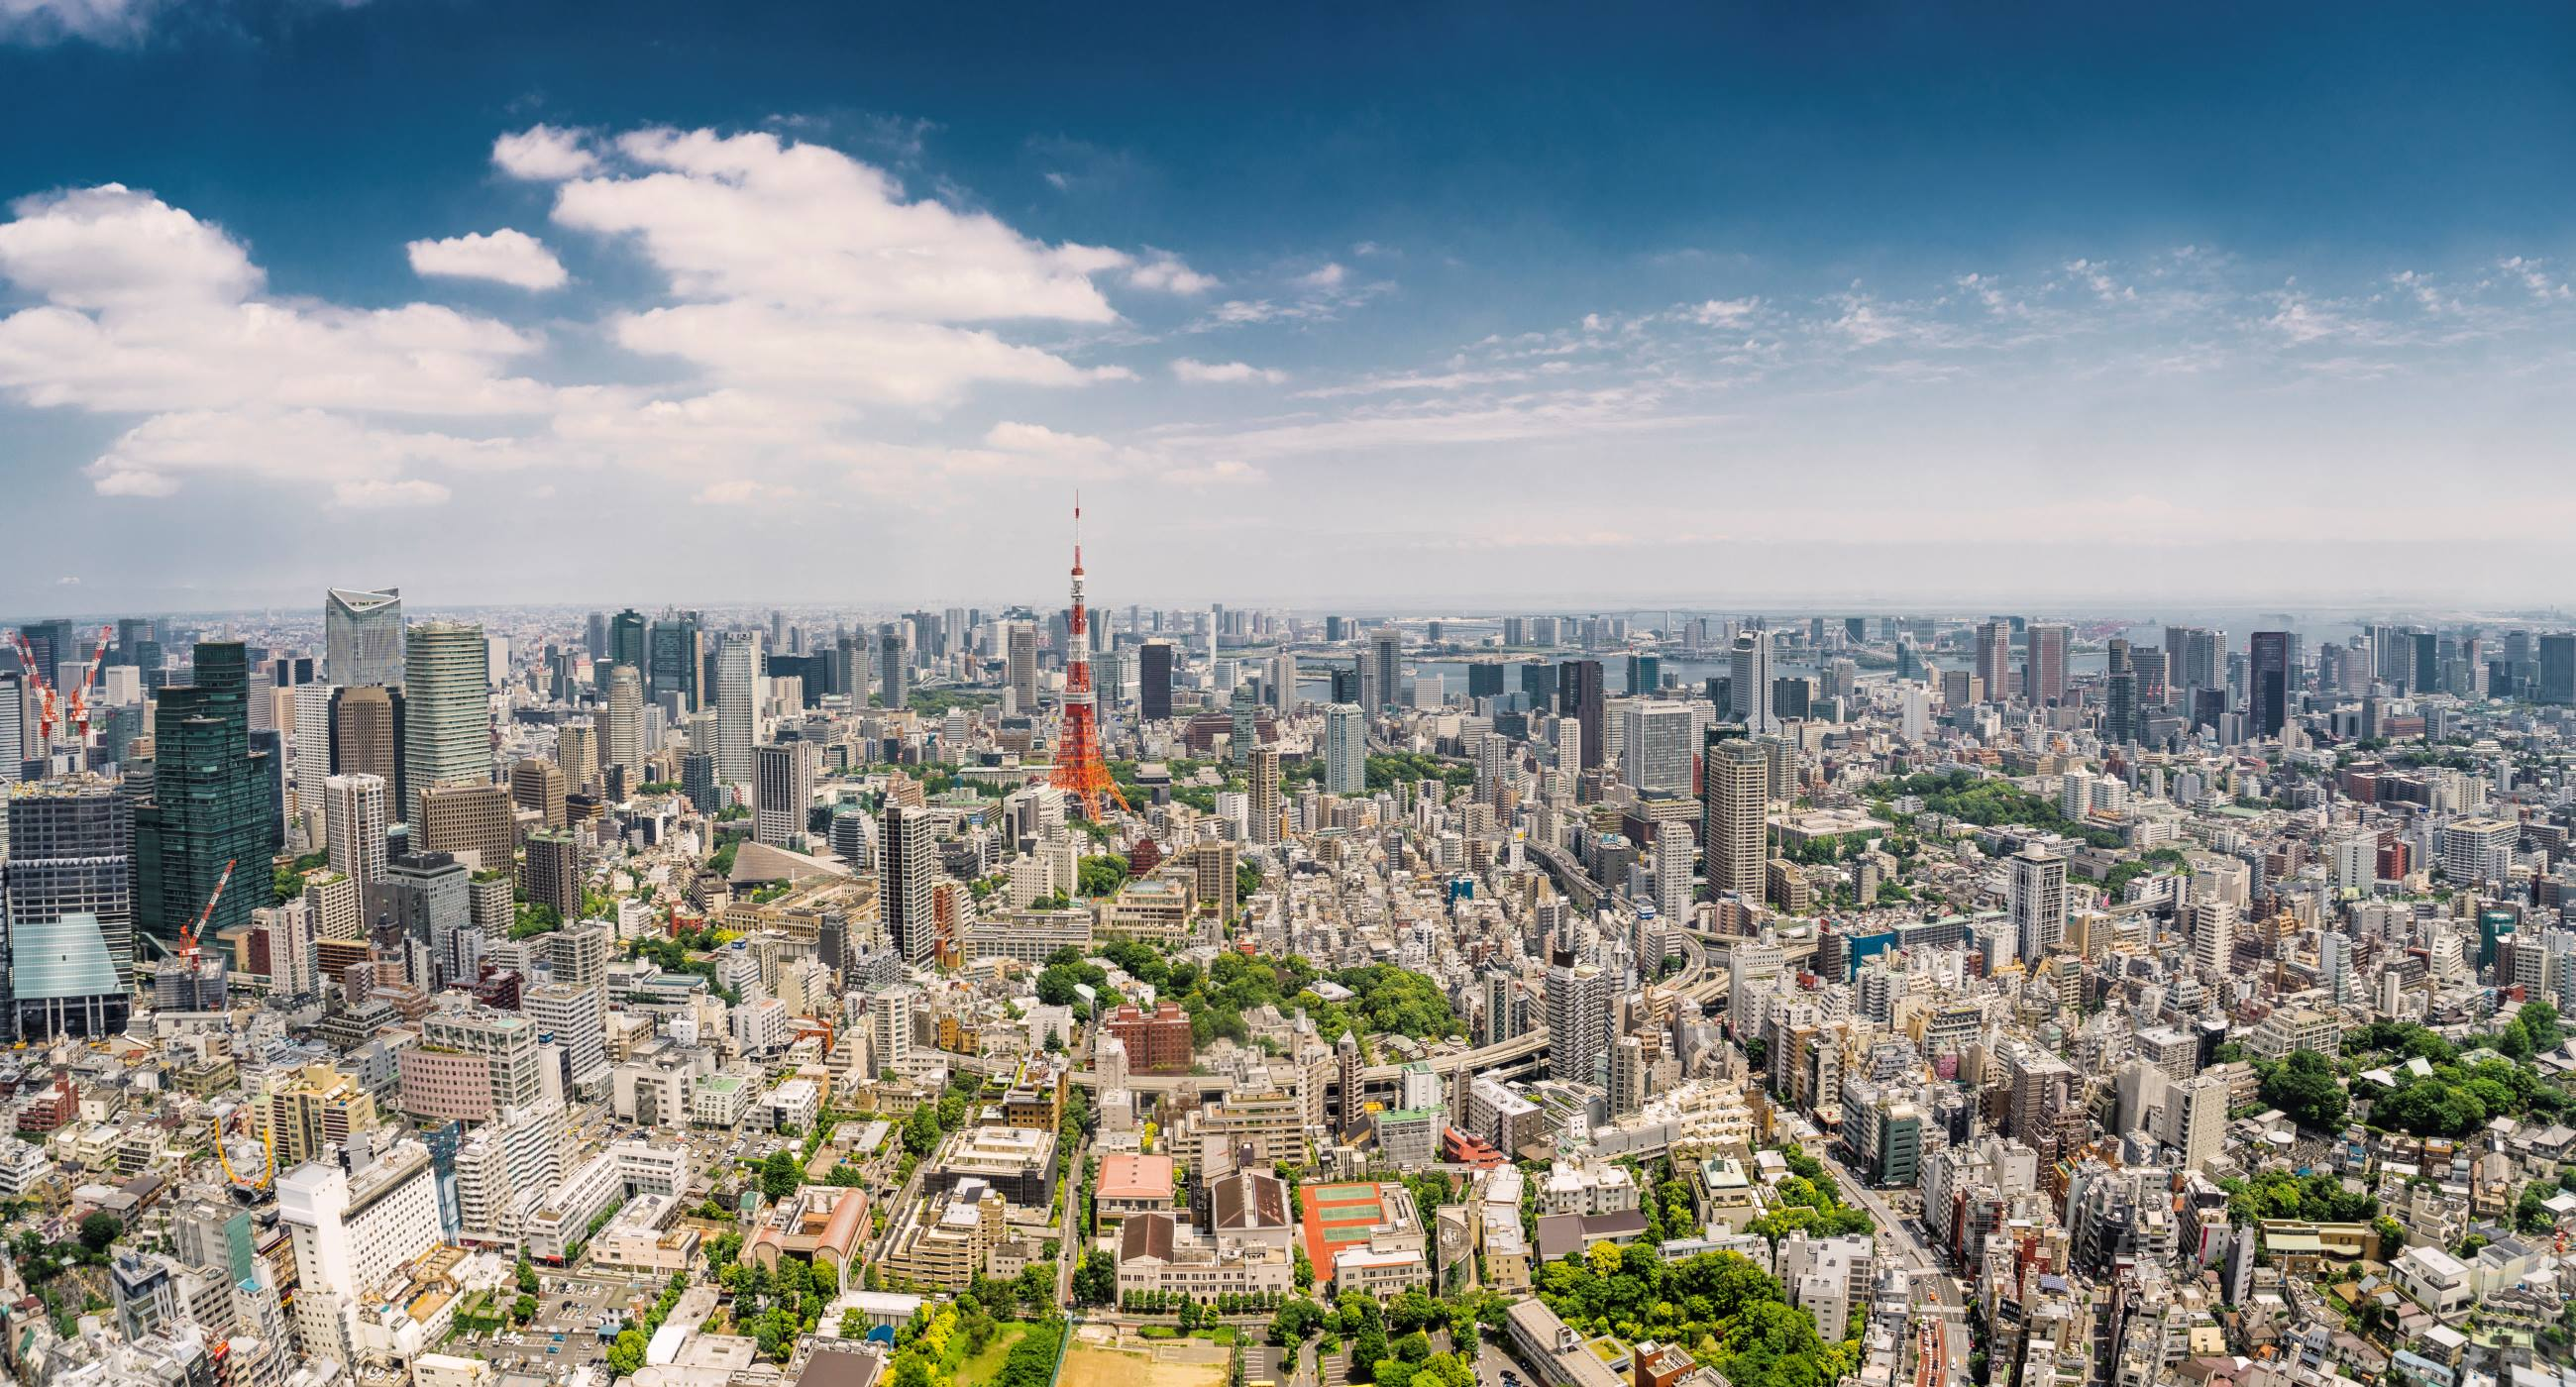 First-trip-to-Japan-Don't-Make-These-Mistakes